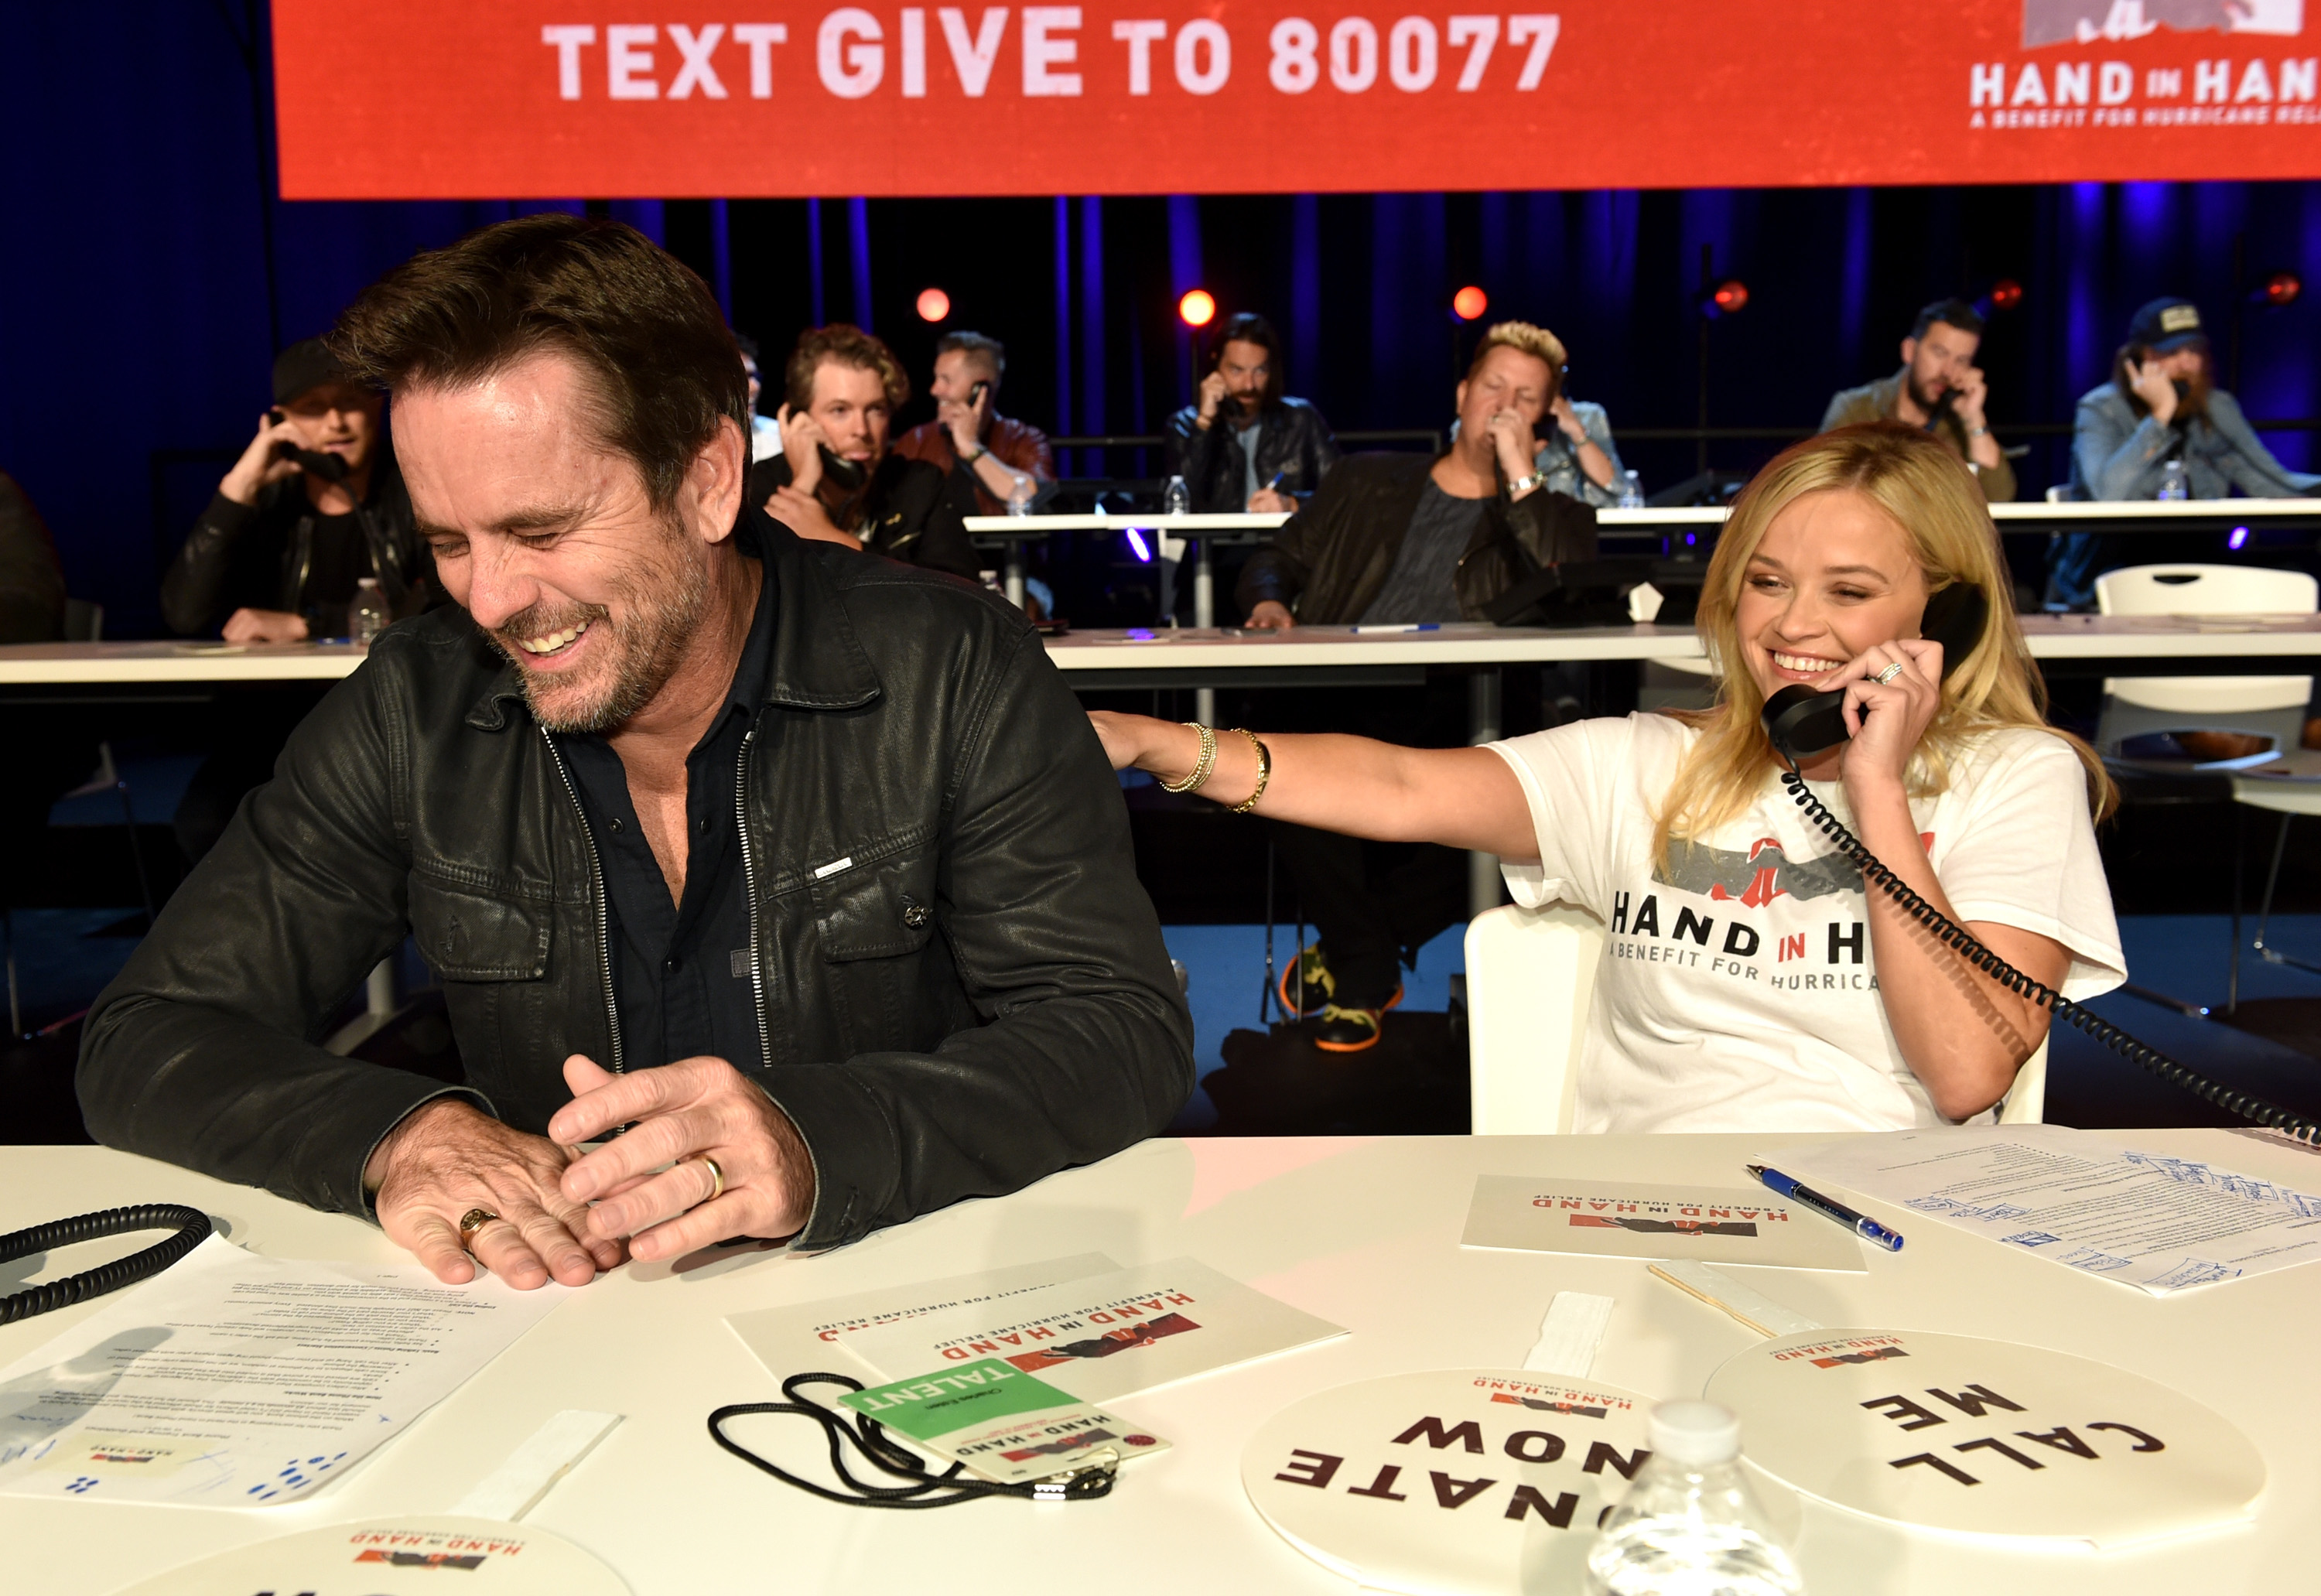 "<div class=""meta image-caption""><div class=""origin-logo origin-image none""><span>none</span></div><span class=""caption-text"">Charles Esten and Reese Witherspoon attend Hand in Hand: A Benefit for Hurricane Relief at the Grand Ole Opry House on September 12, 2017 in Nashville, Tennessee. (John Shearer/Hand in Hand/Getty Images)</span></div>"